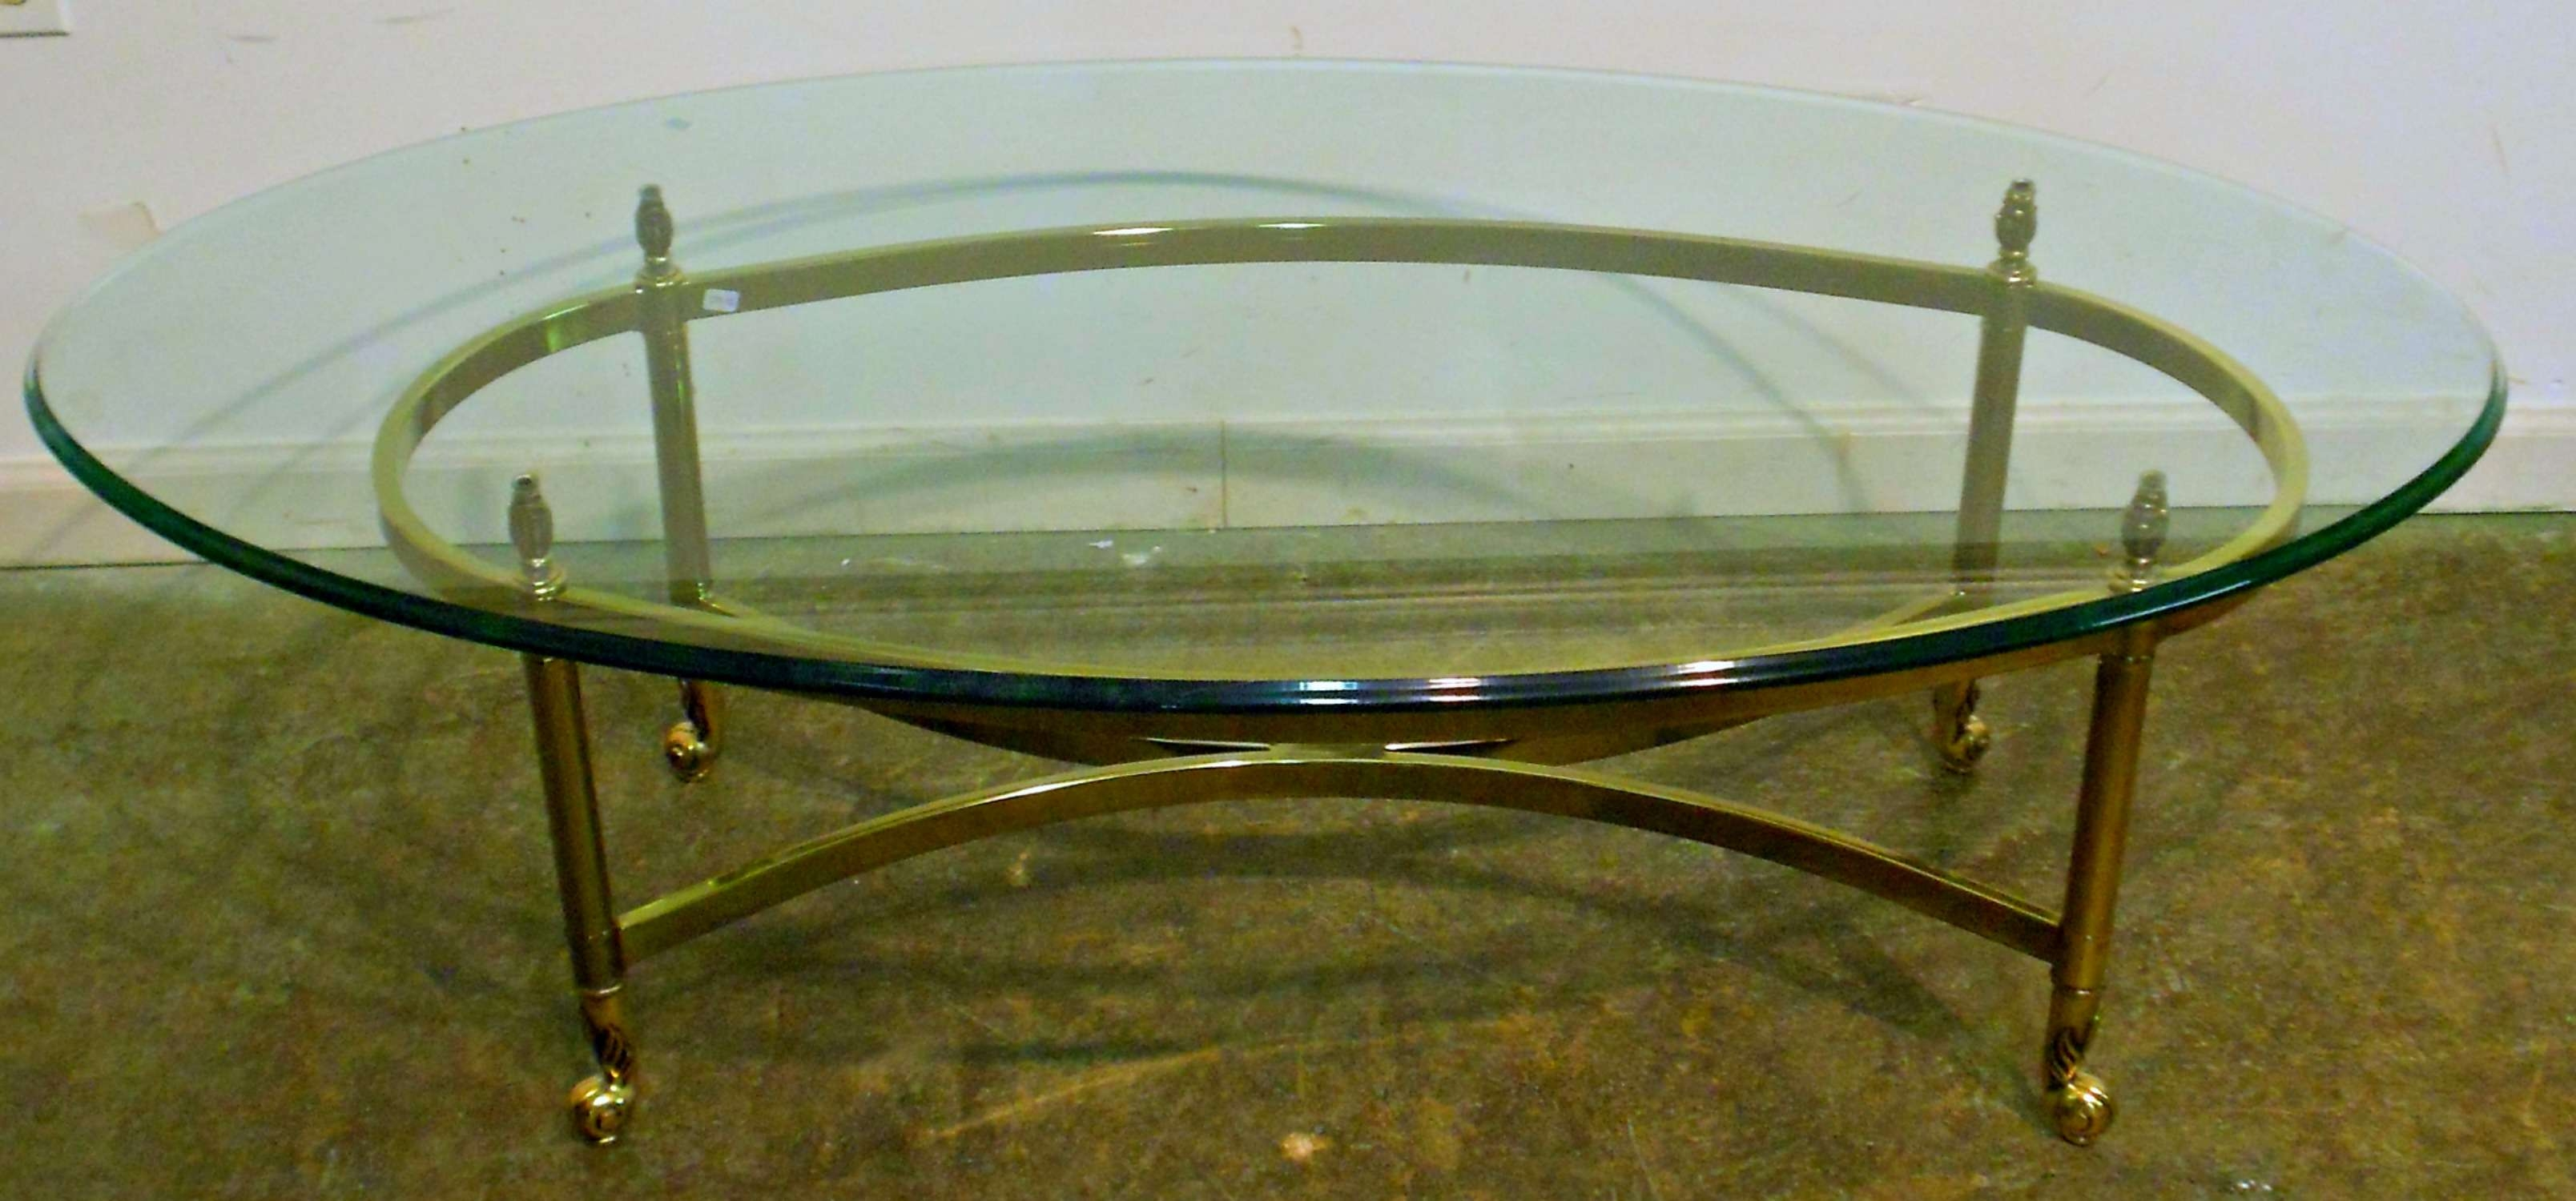 Preferred Antique Brass Glass Coffee Tables Intended For Oval Glass Top Coffee Table With Brass Frame And Wheels For (View 16 of 20)